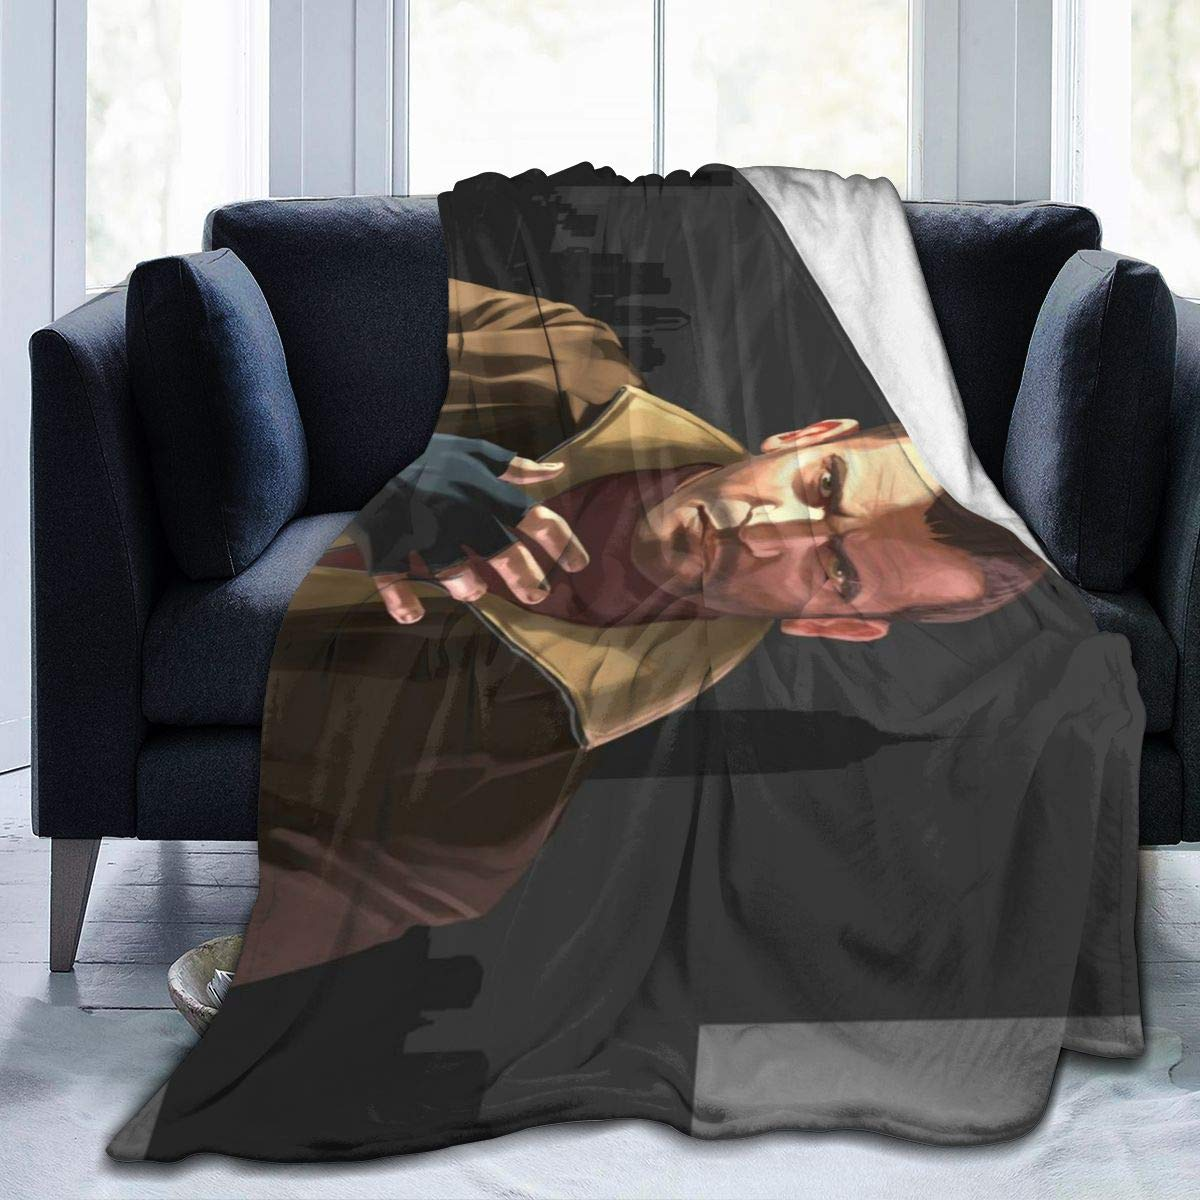 "Gr_and The_ft Au-to IV Ultra-Soft Micro Fleece Blanket Anti-pilling Flannel Sleep Comfort Super Soft Sofa Blanket To Let Your Cold Winter Feel The Warmth Of The Stove (5040)(6050)(8060) 80""x60"""